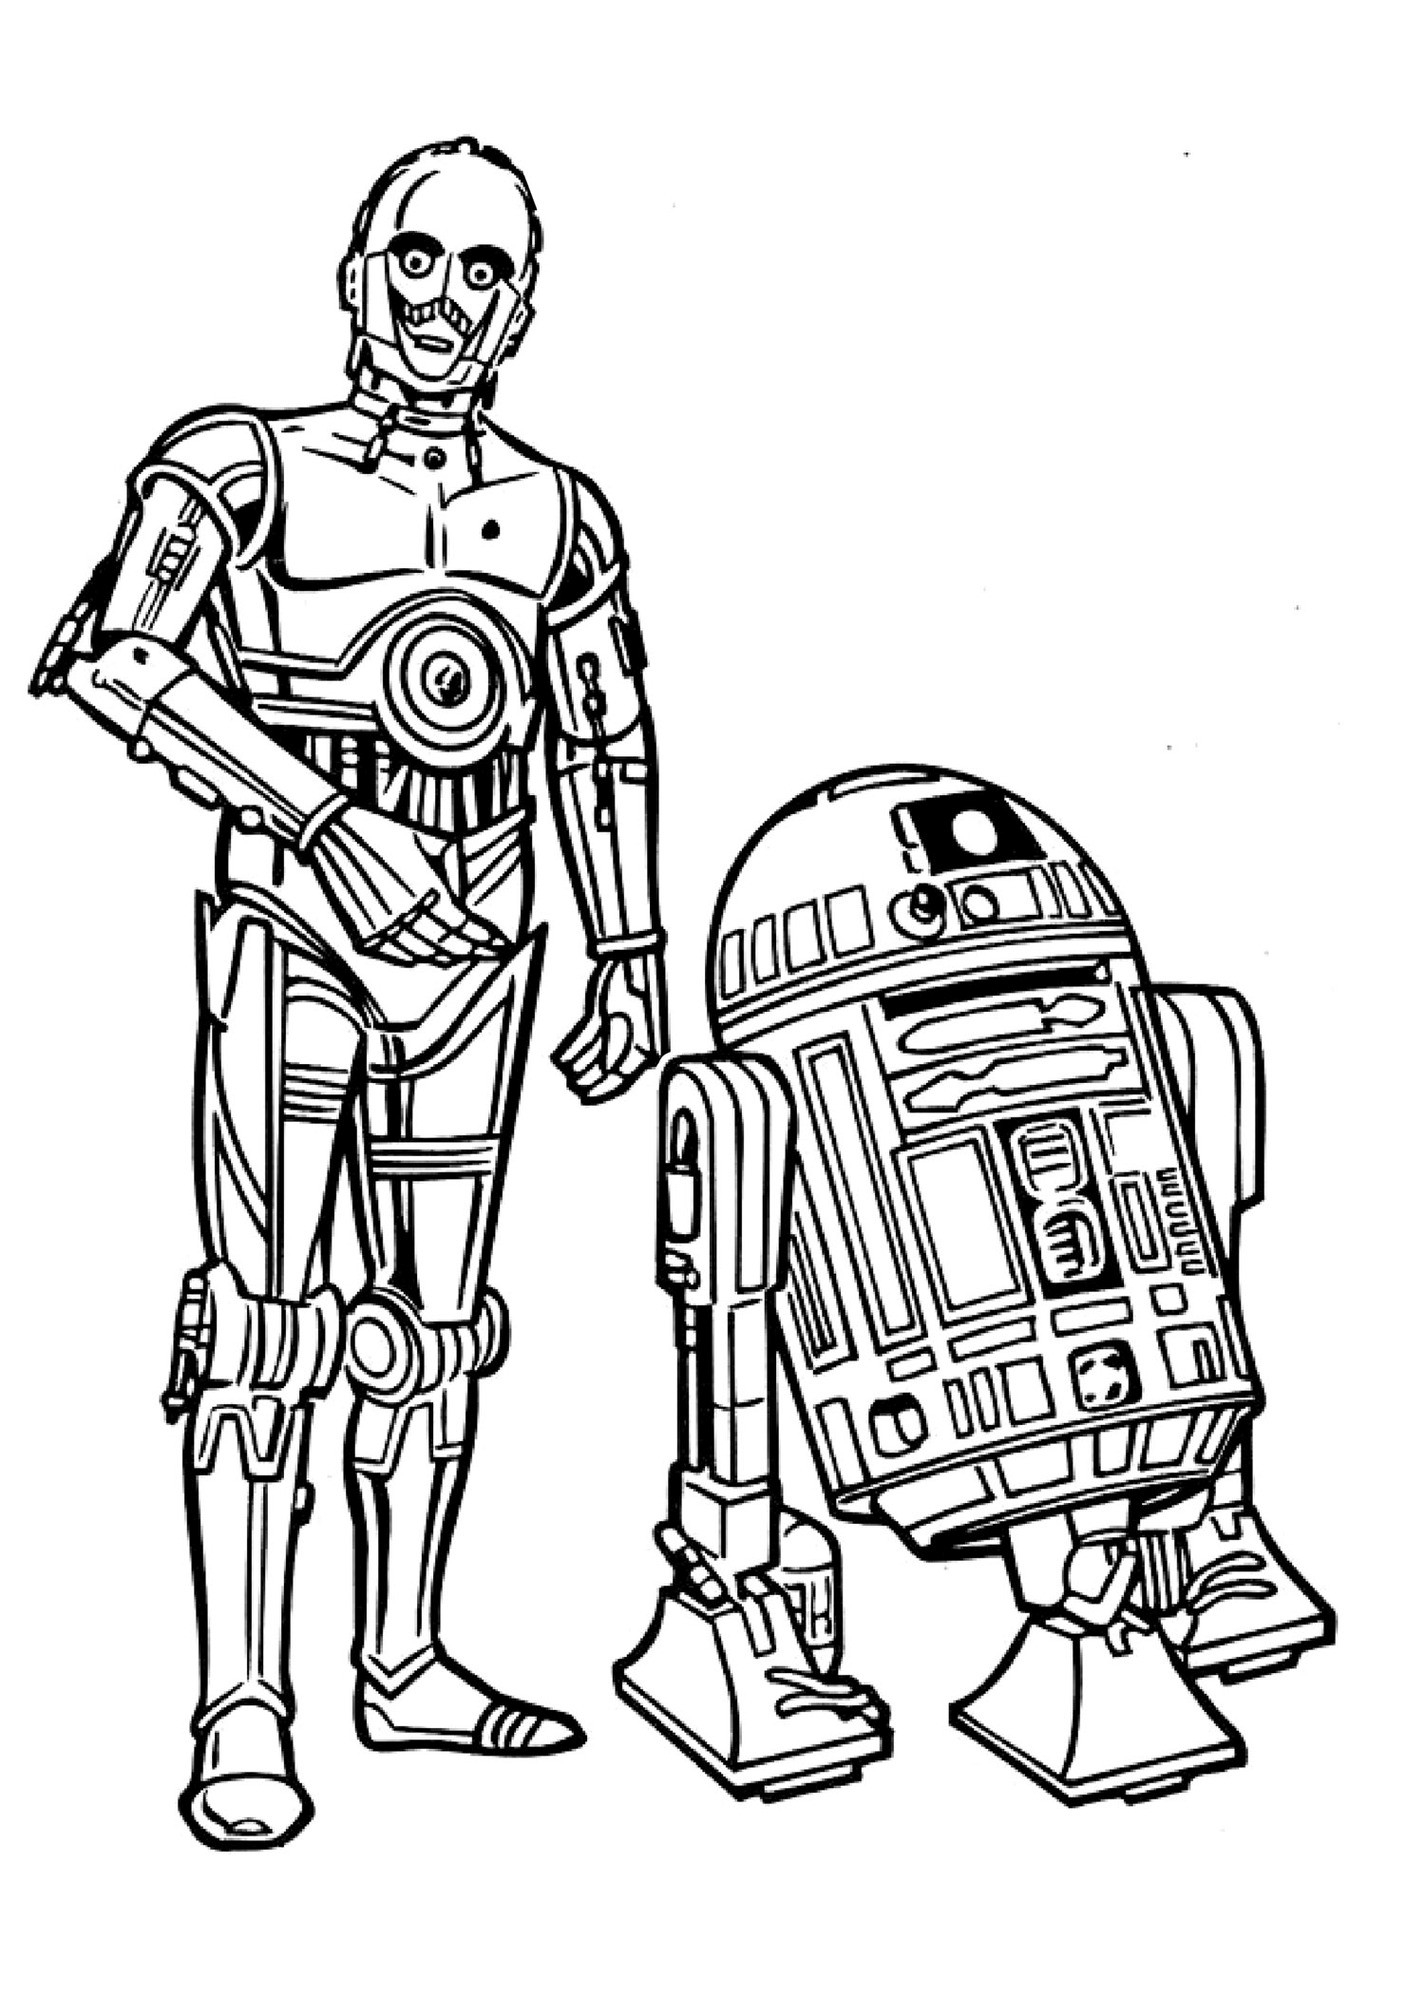 Ausmalbilder Walt Disney : Star Wars Coloring Pages The Force Awakens Coloring Pages Download